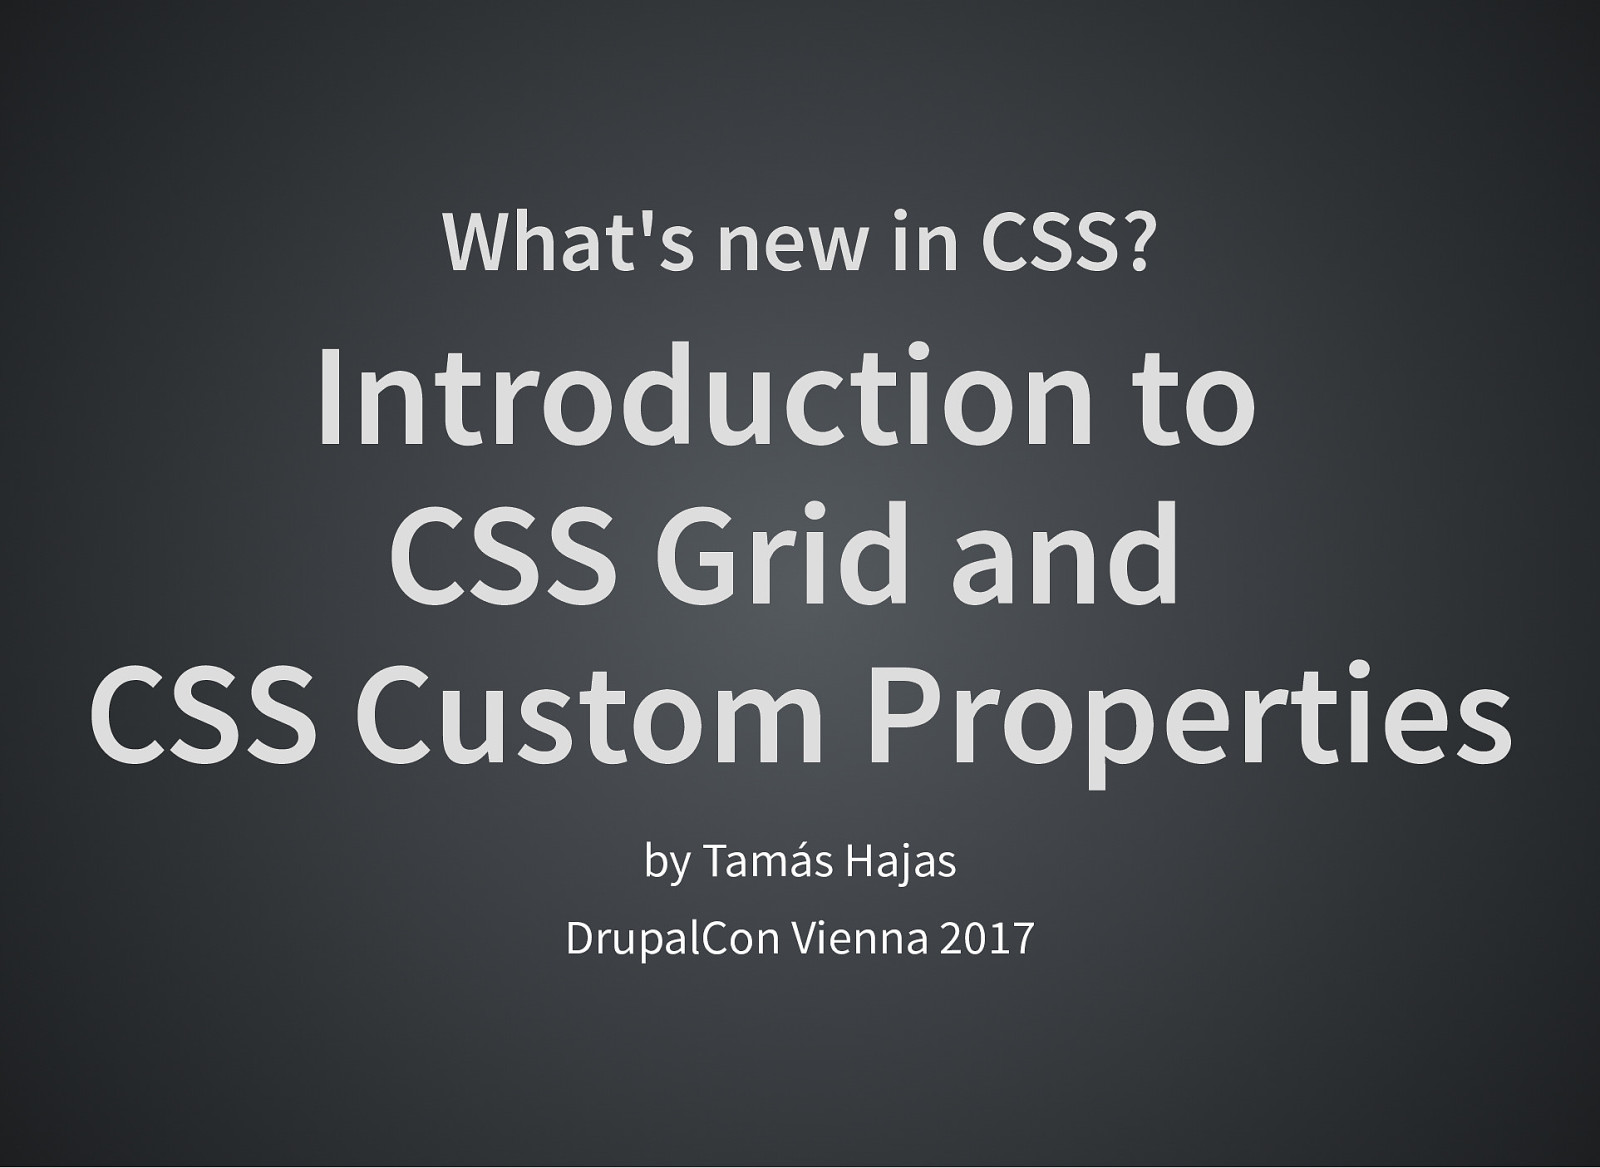 What's new in CSS? Introduction to CSS Grid and CSS Custom Properties